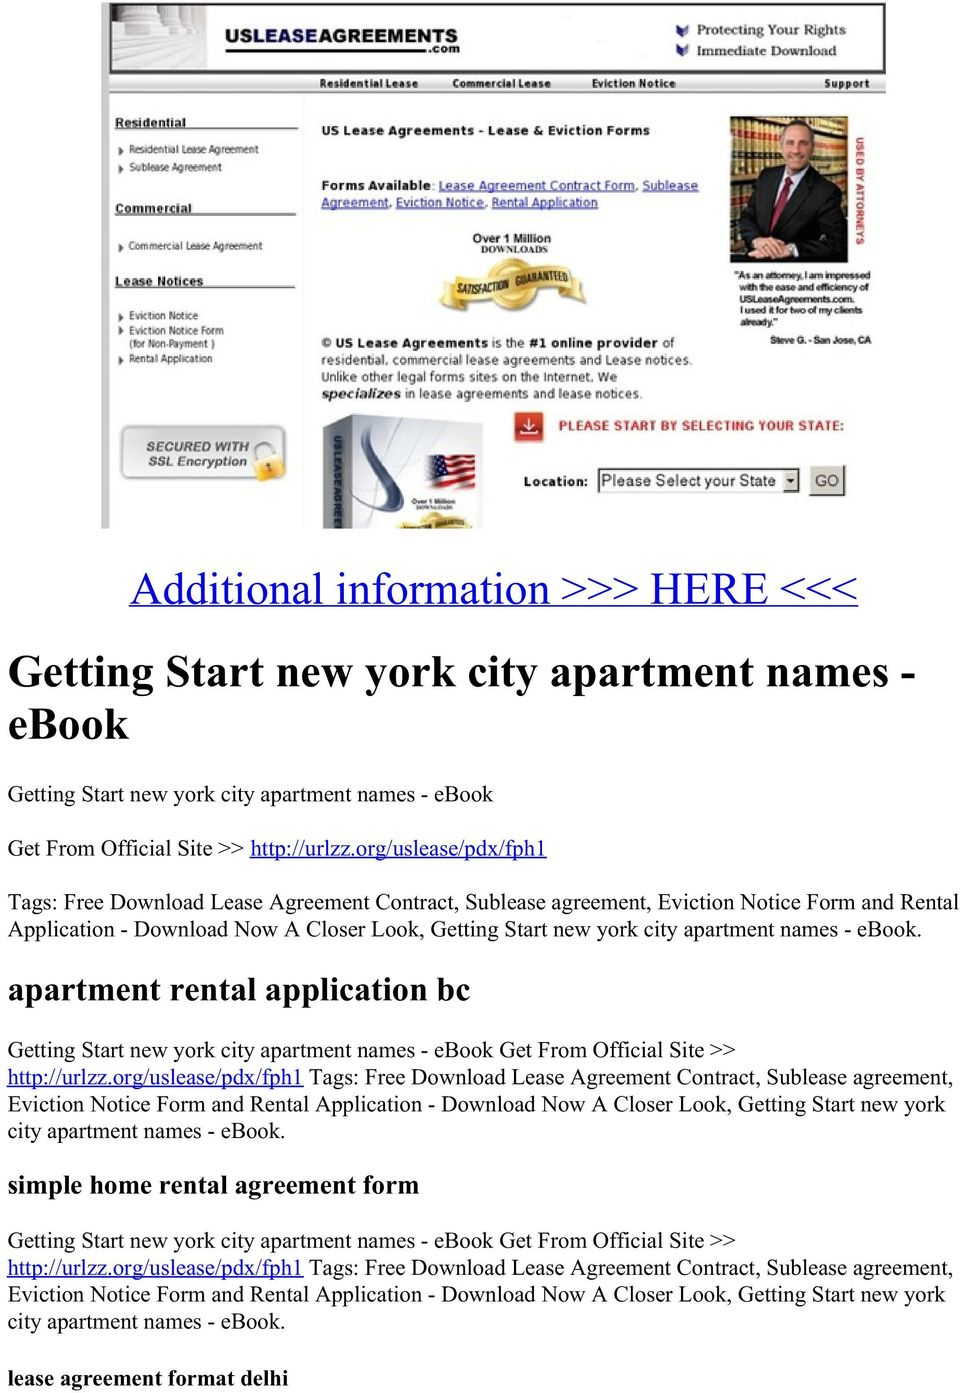 names - ebook. apartment rental application bc Getting Start new york city apartment names - ebook